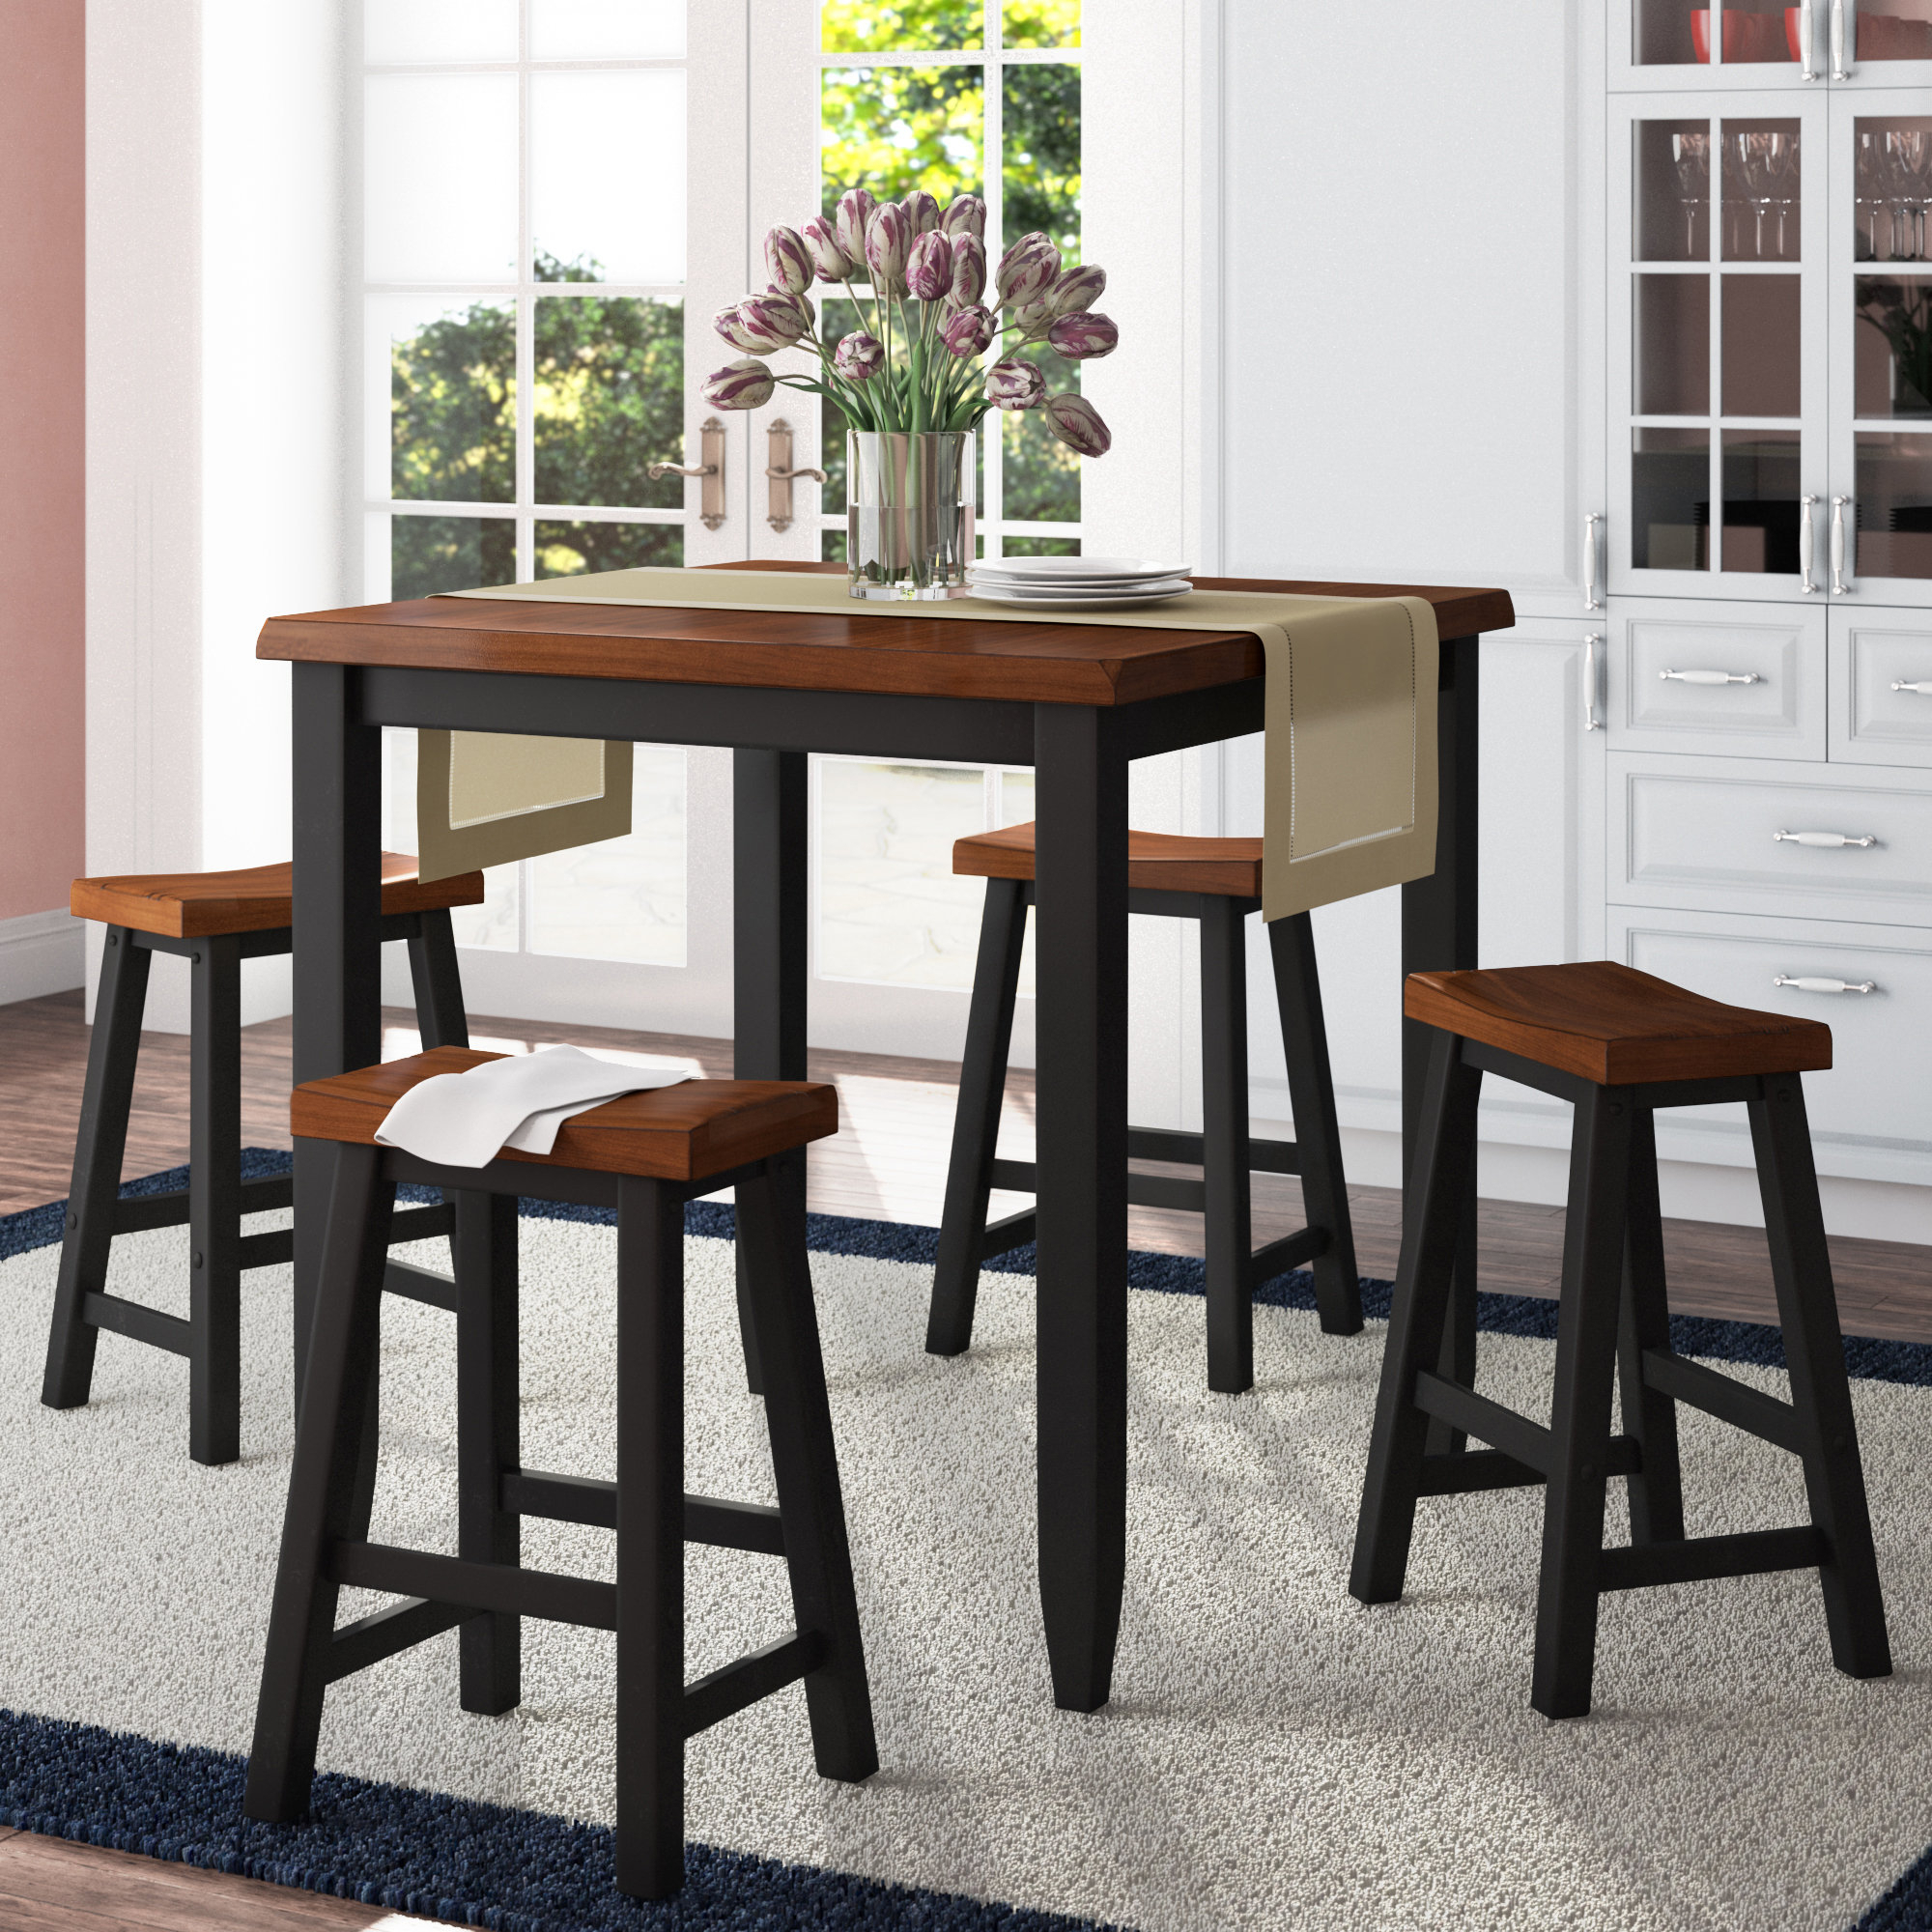 Latest Darby Home Co Simmons Casegoods Ruggerio 5 Piece Counter Height Pub For Kerley 4 Piece Dining Sets (View 11 of 25)